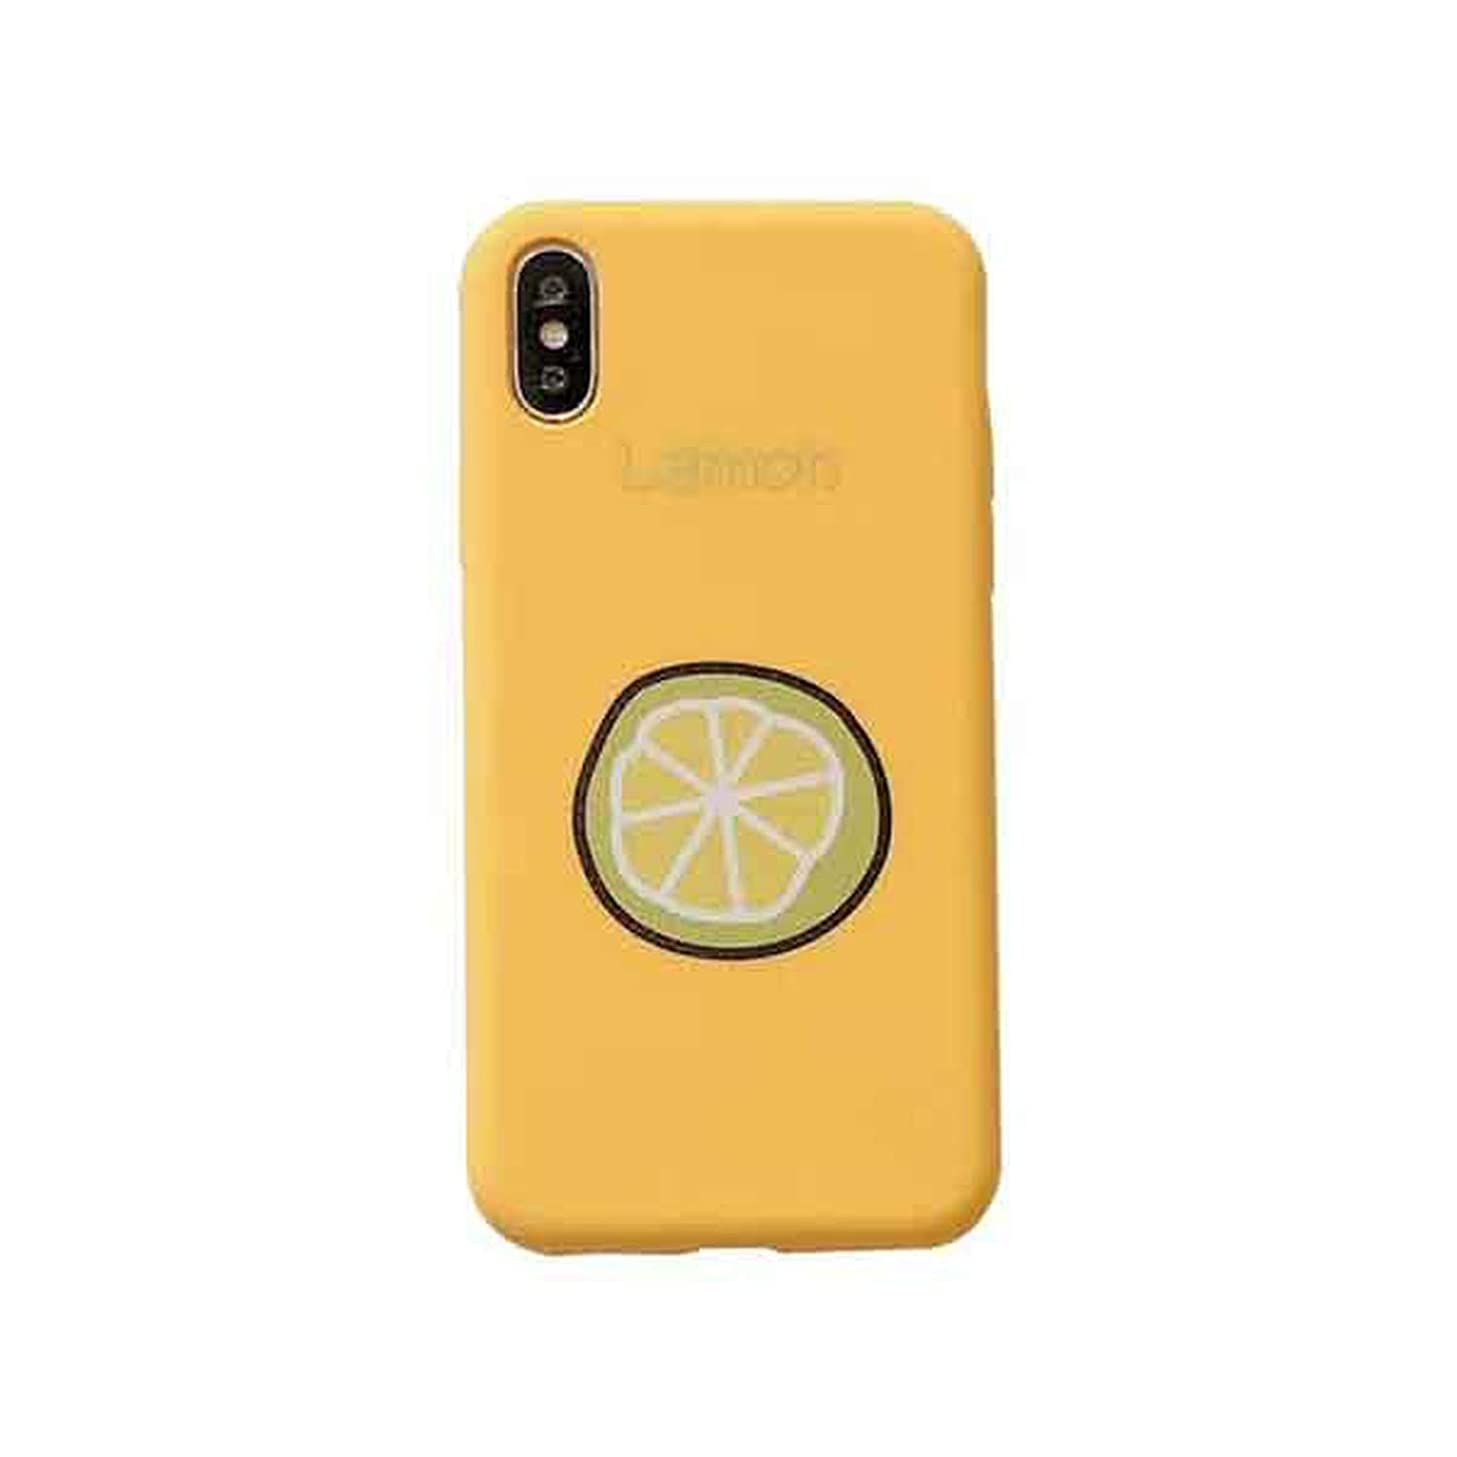 Candy Color Fruit Letters Phone Cases for iPhone Xs Max XR XS X 6 6S 7 8 Plus Soft TPU Phone Back Cover Coque Gifts,Yellow,for iPhone 6 6S